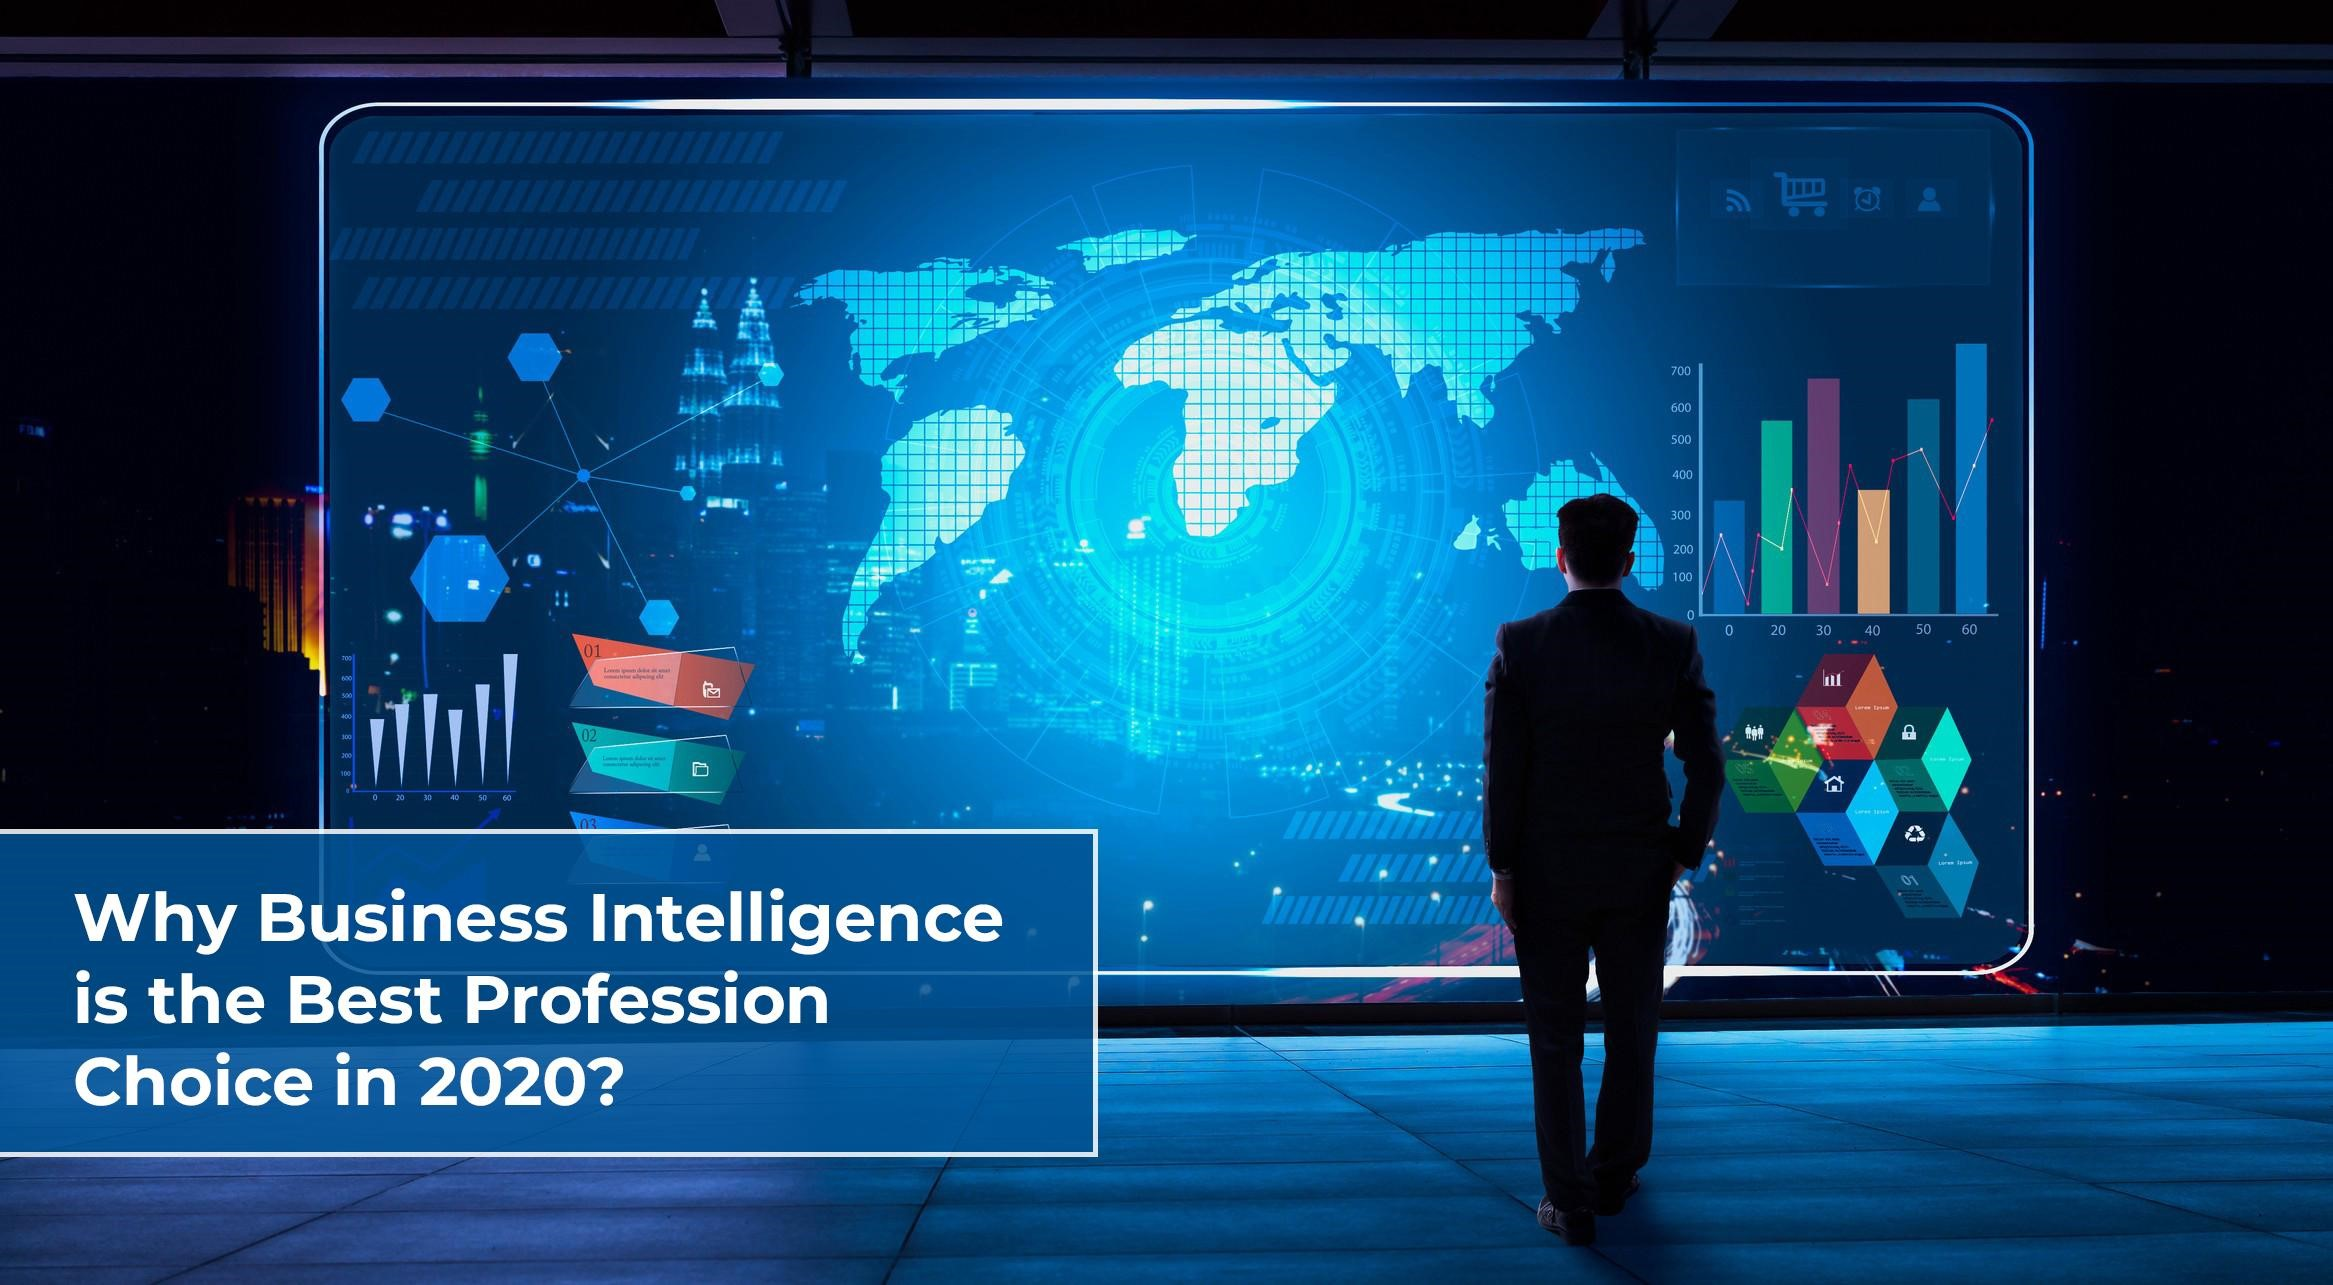 Scope of Business Intelligence in Future as Good Carrier Option - 2020